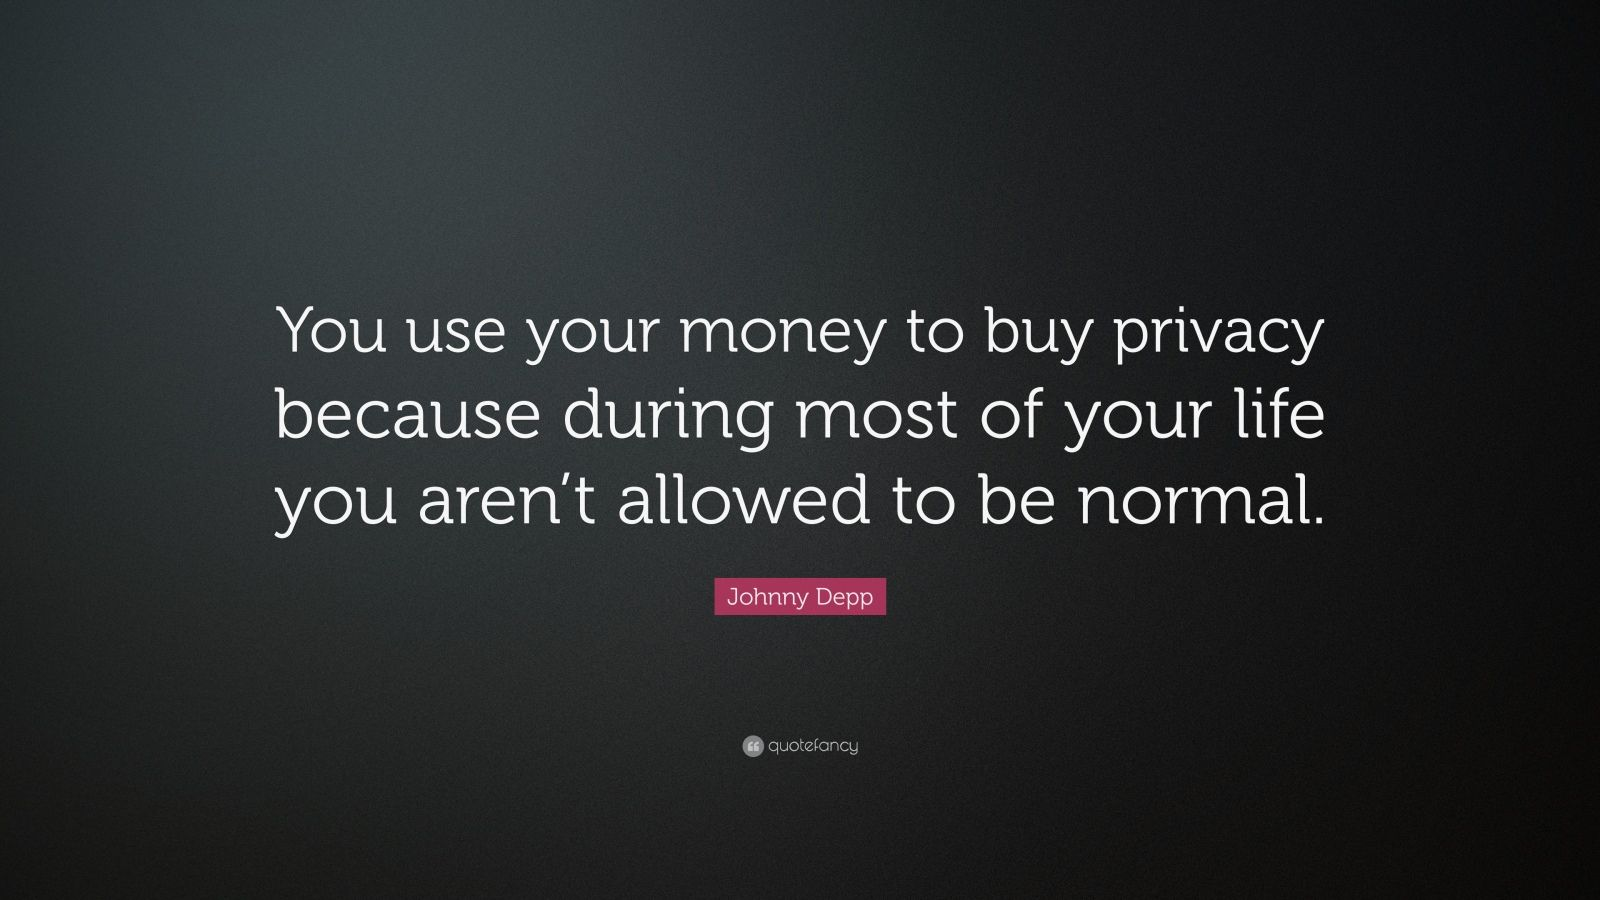 """Johnny Depp Quote: """"You use your money to buy privacy because during most of your life you aren't allowed to be normal."""""""